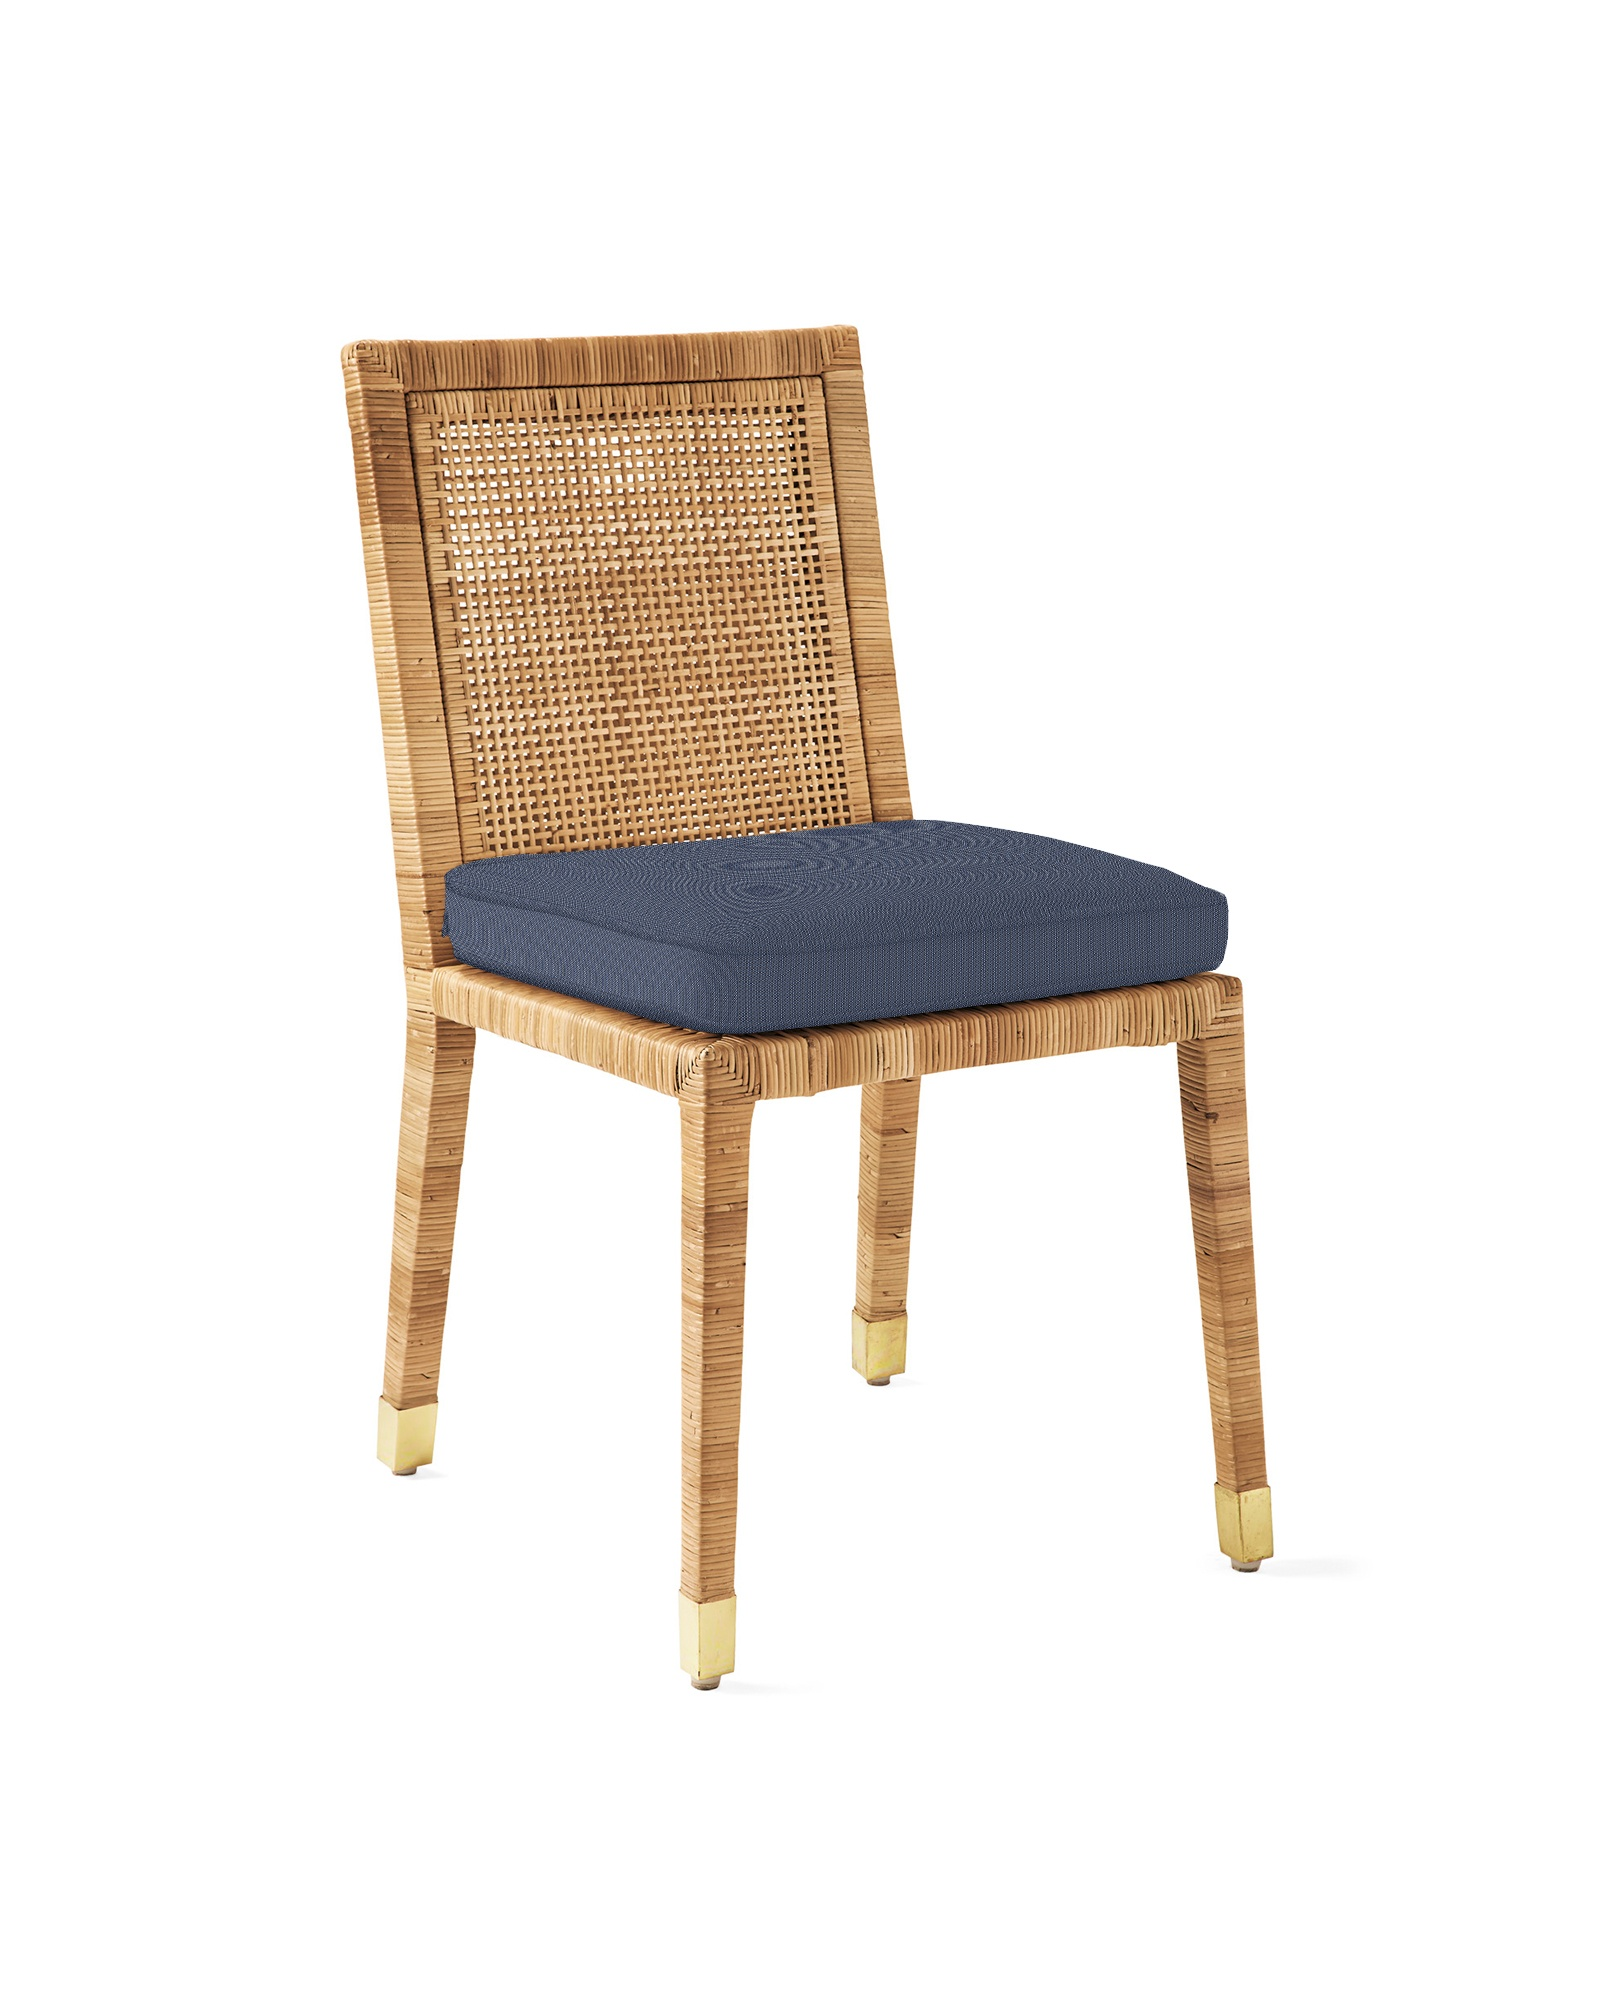 Cushion Cover for Balboa Side Chair - Natural, Perennials Basketweave Indigo